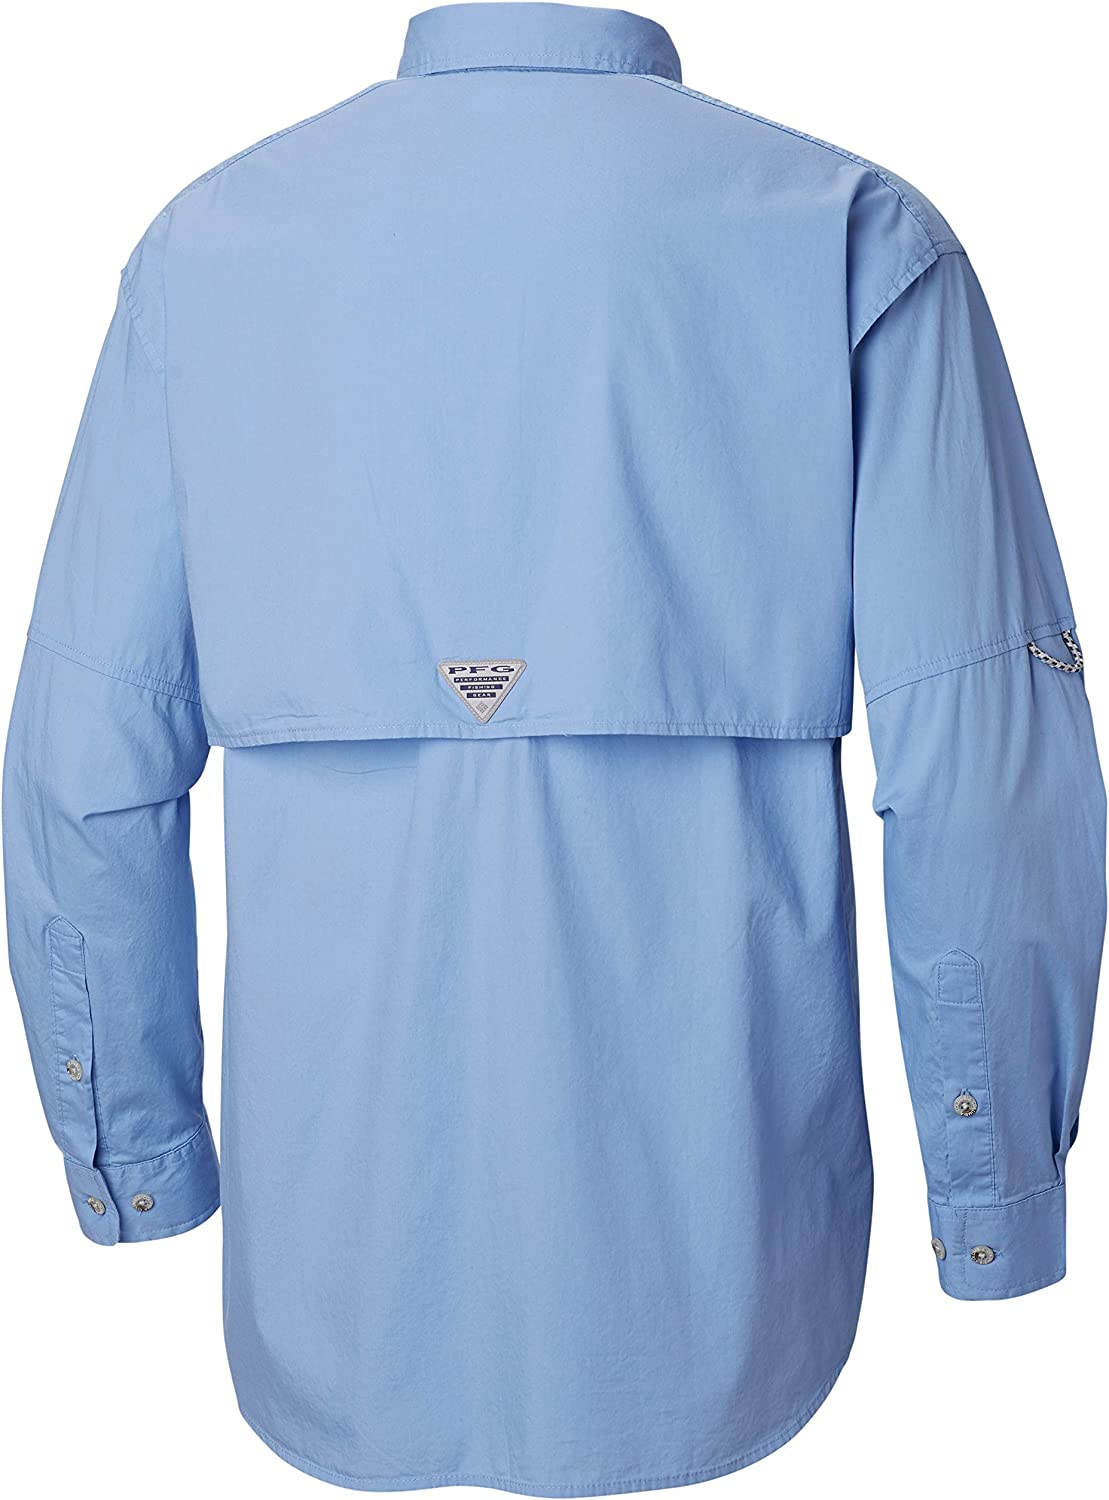 Columbia Sportswear Men's Bonehead Long Sleeve Shirt Light Blue